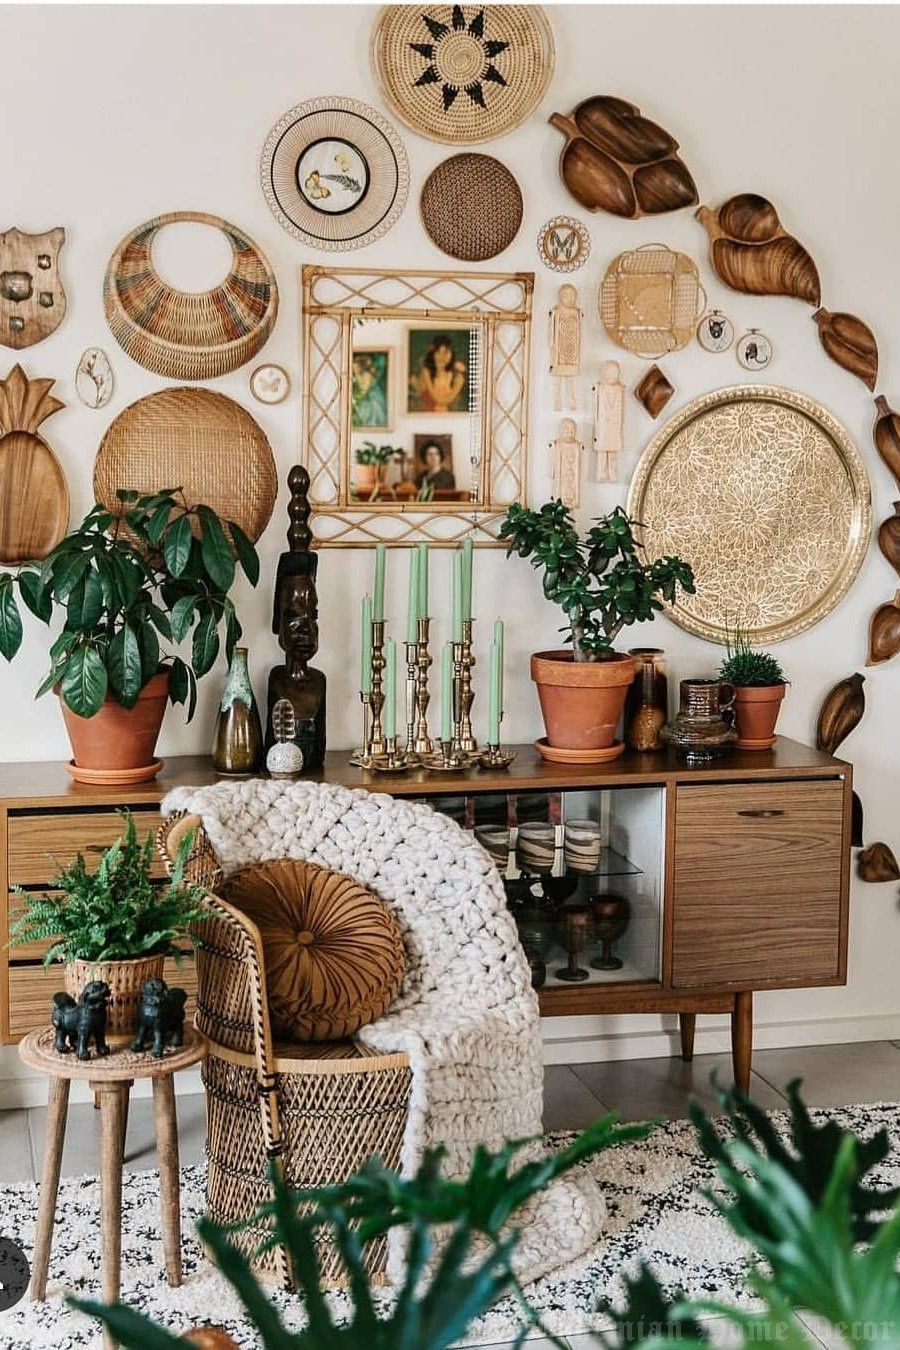 10 Ways to Make Your Bohemian Home Decor Easier